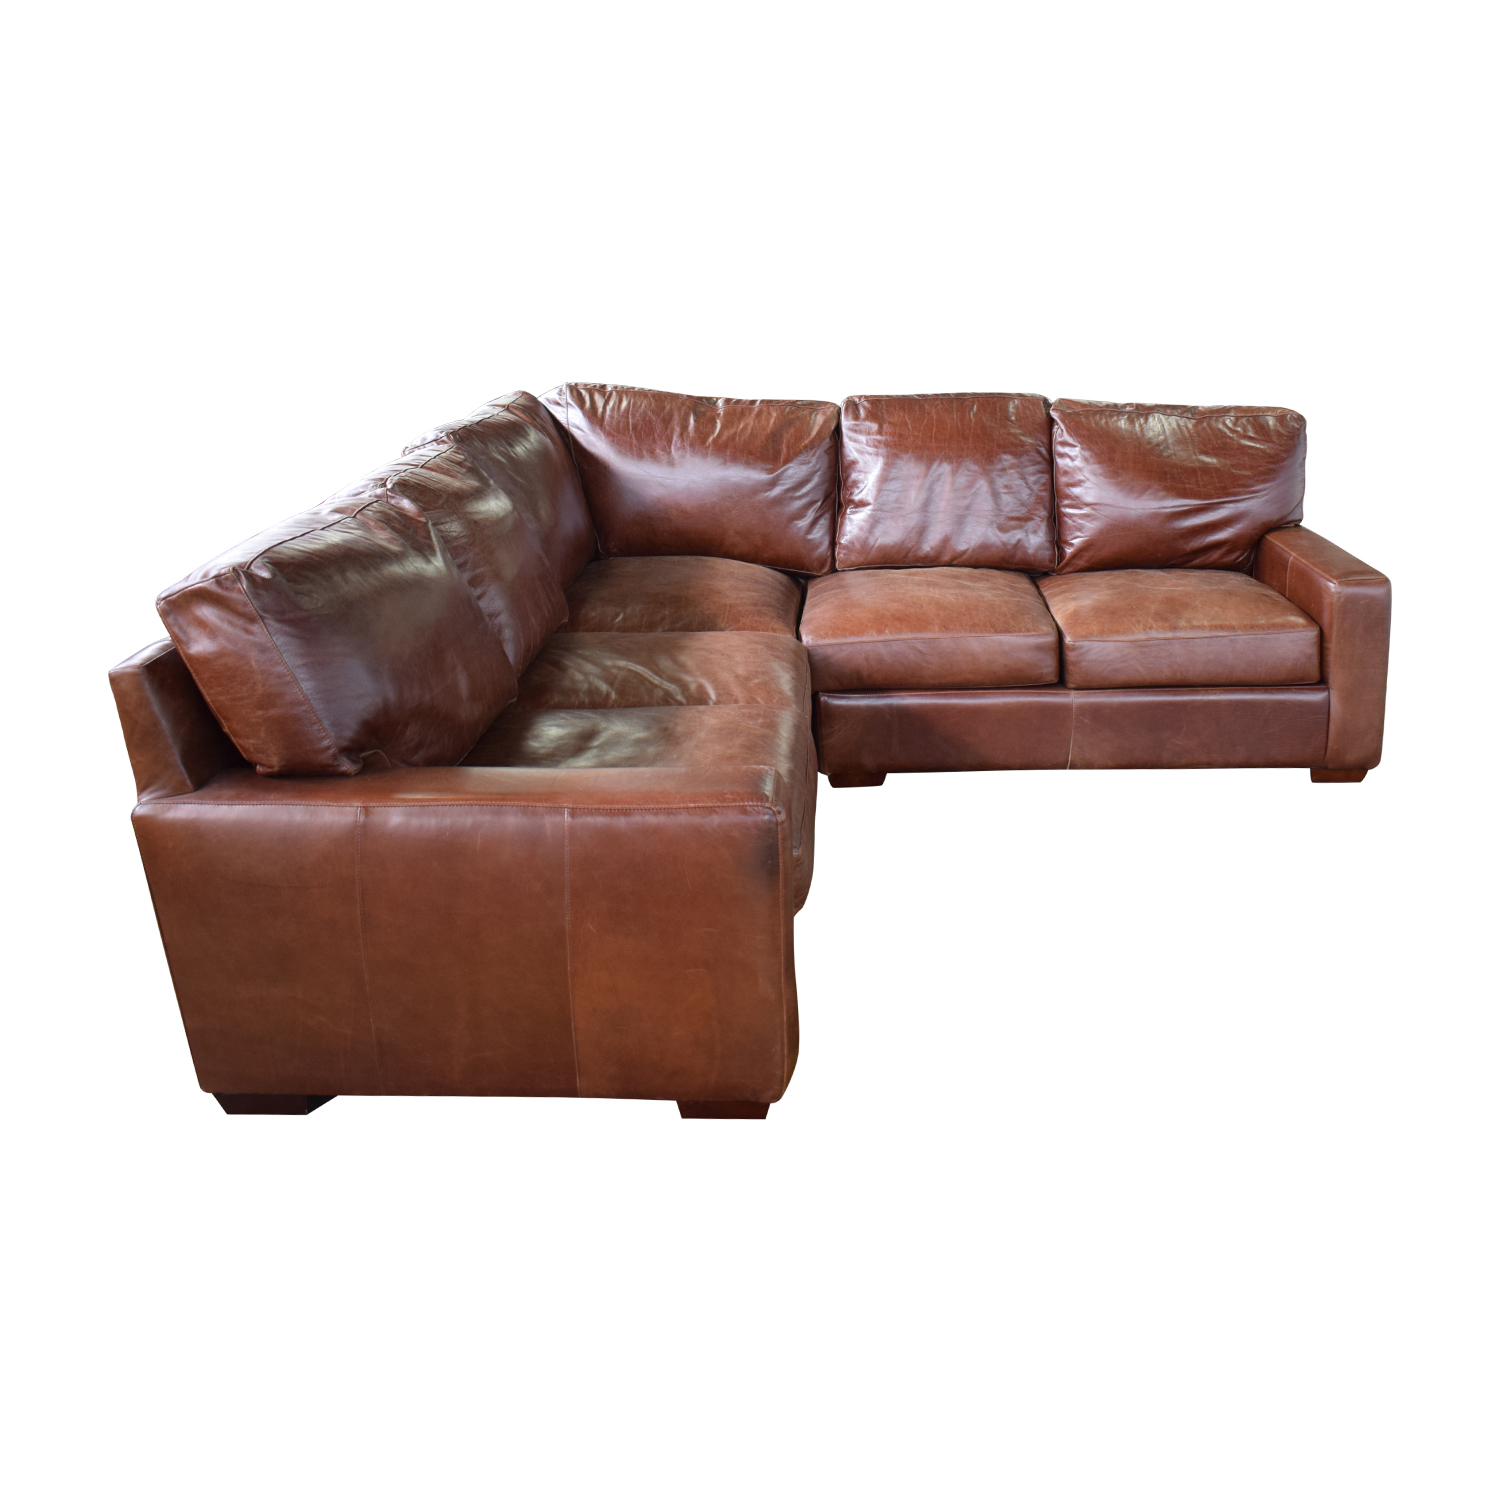 buy ABC Carpet & Home ABC Carpet & Home Leather Sectional online